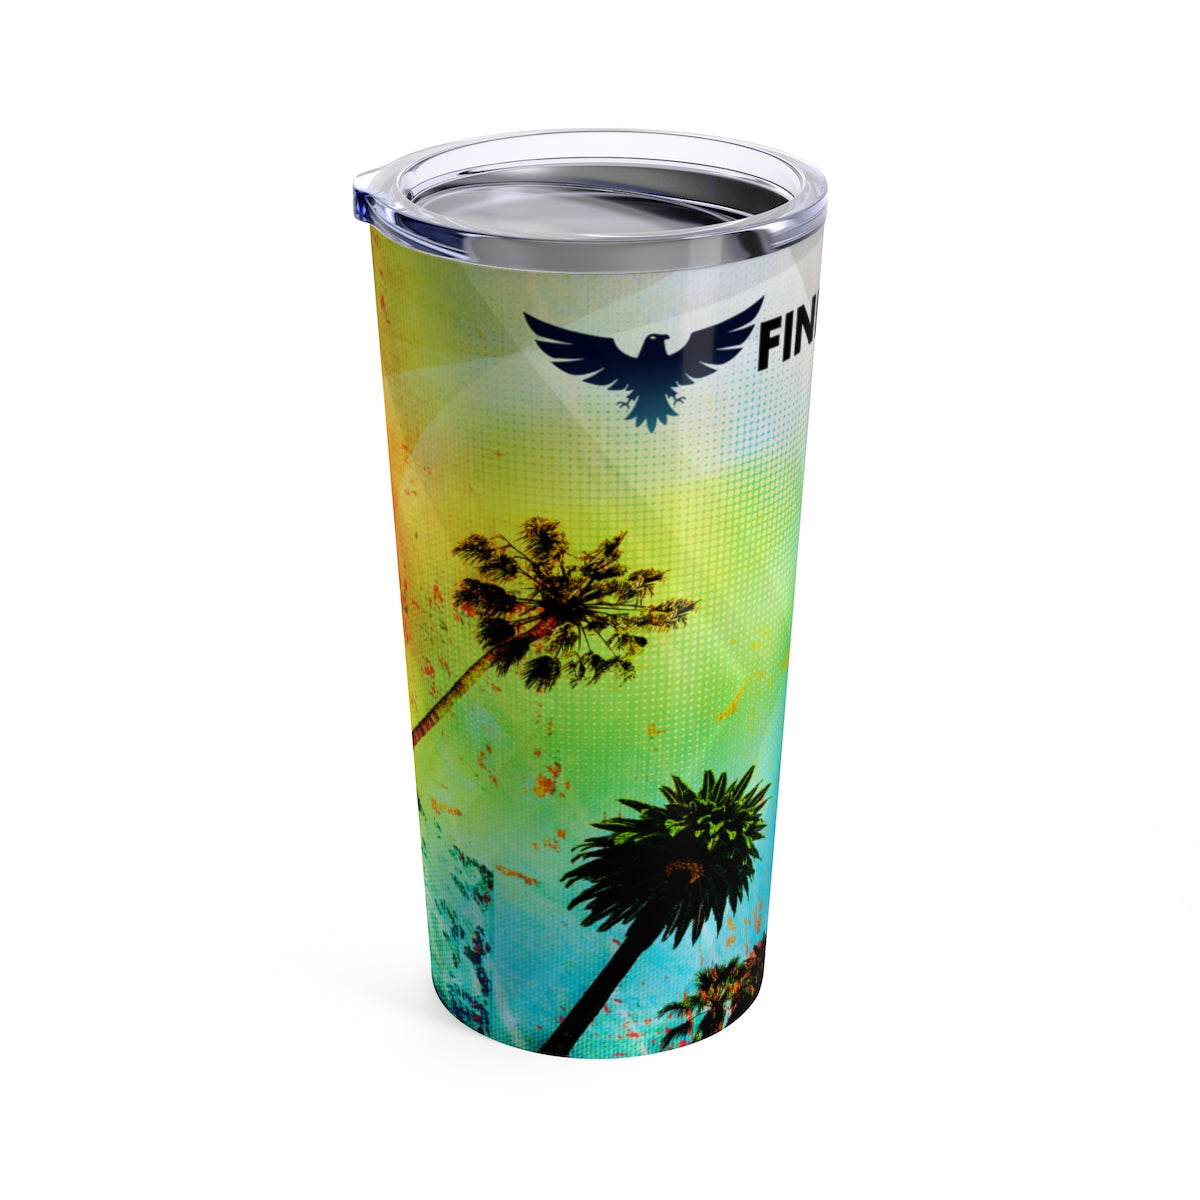 FYC 20 oz Stainless Steel Beach Art Tumbler - Find Your Coast Brand